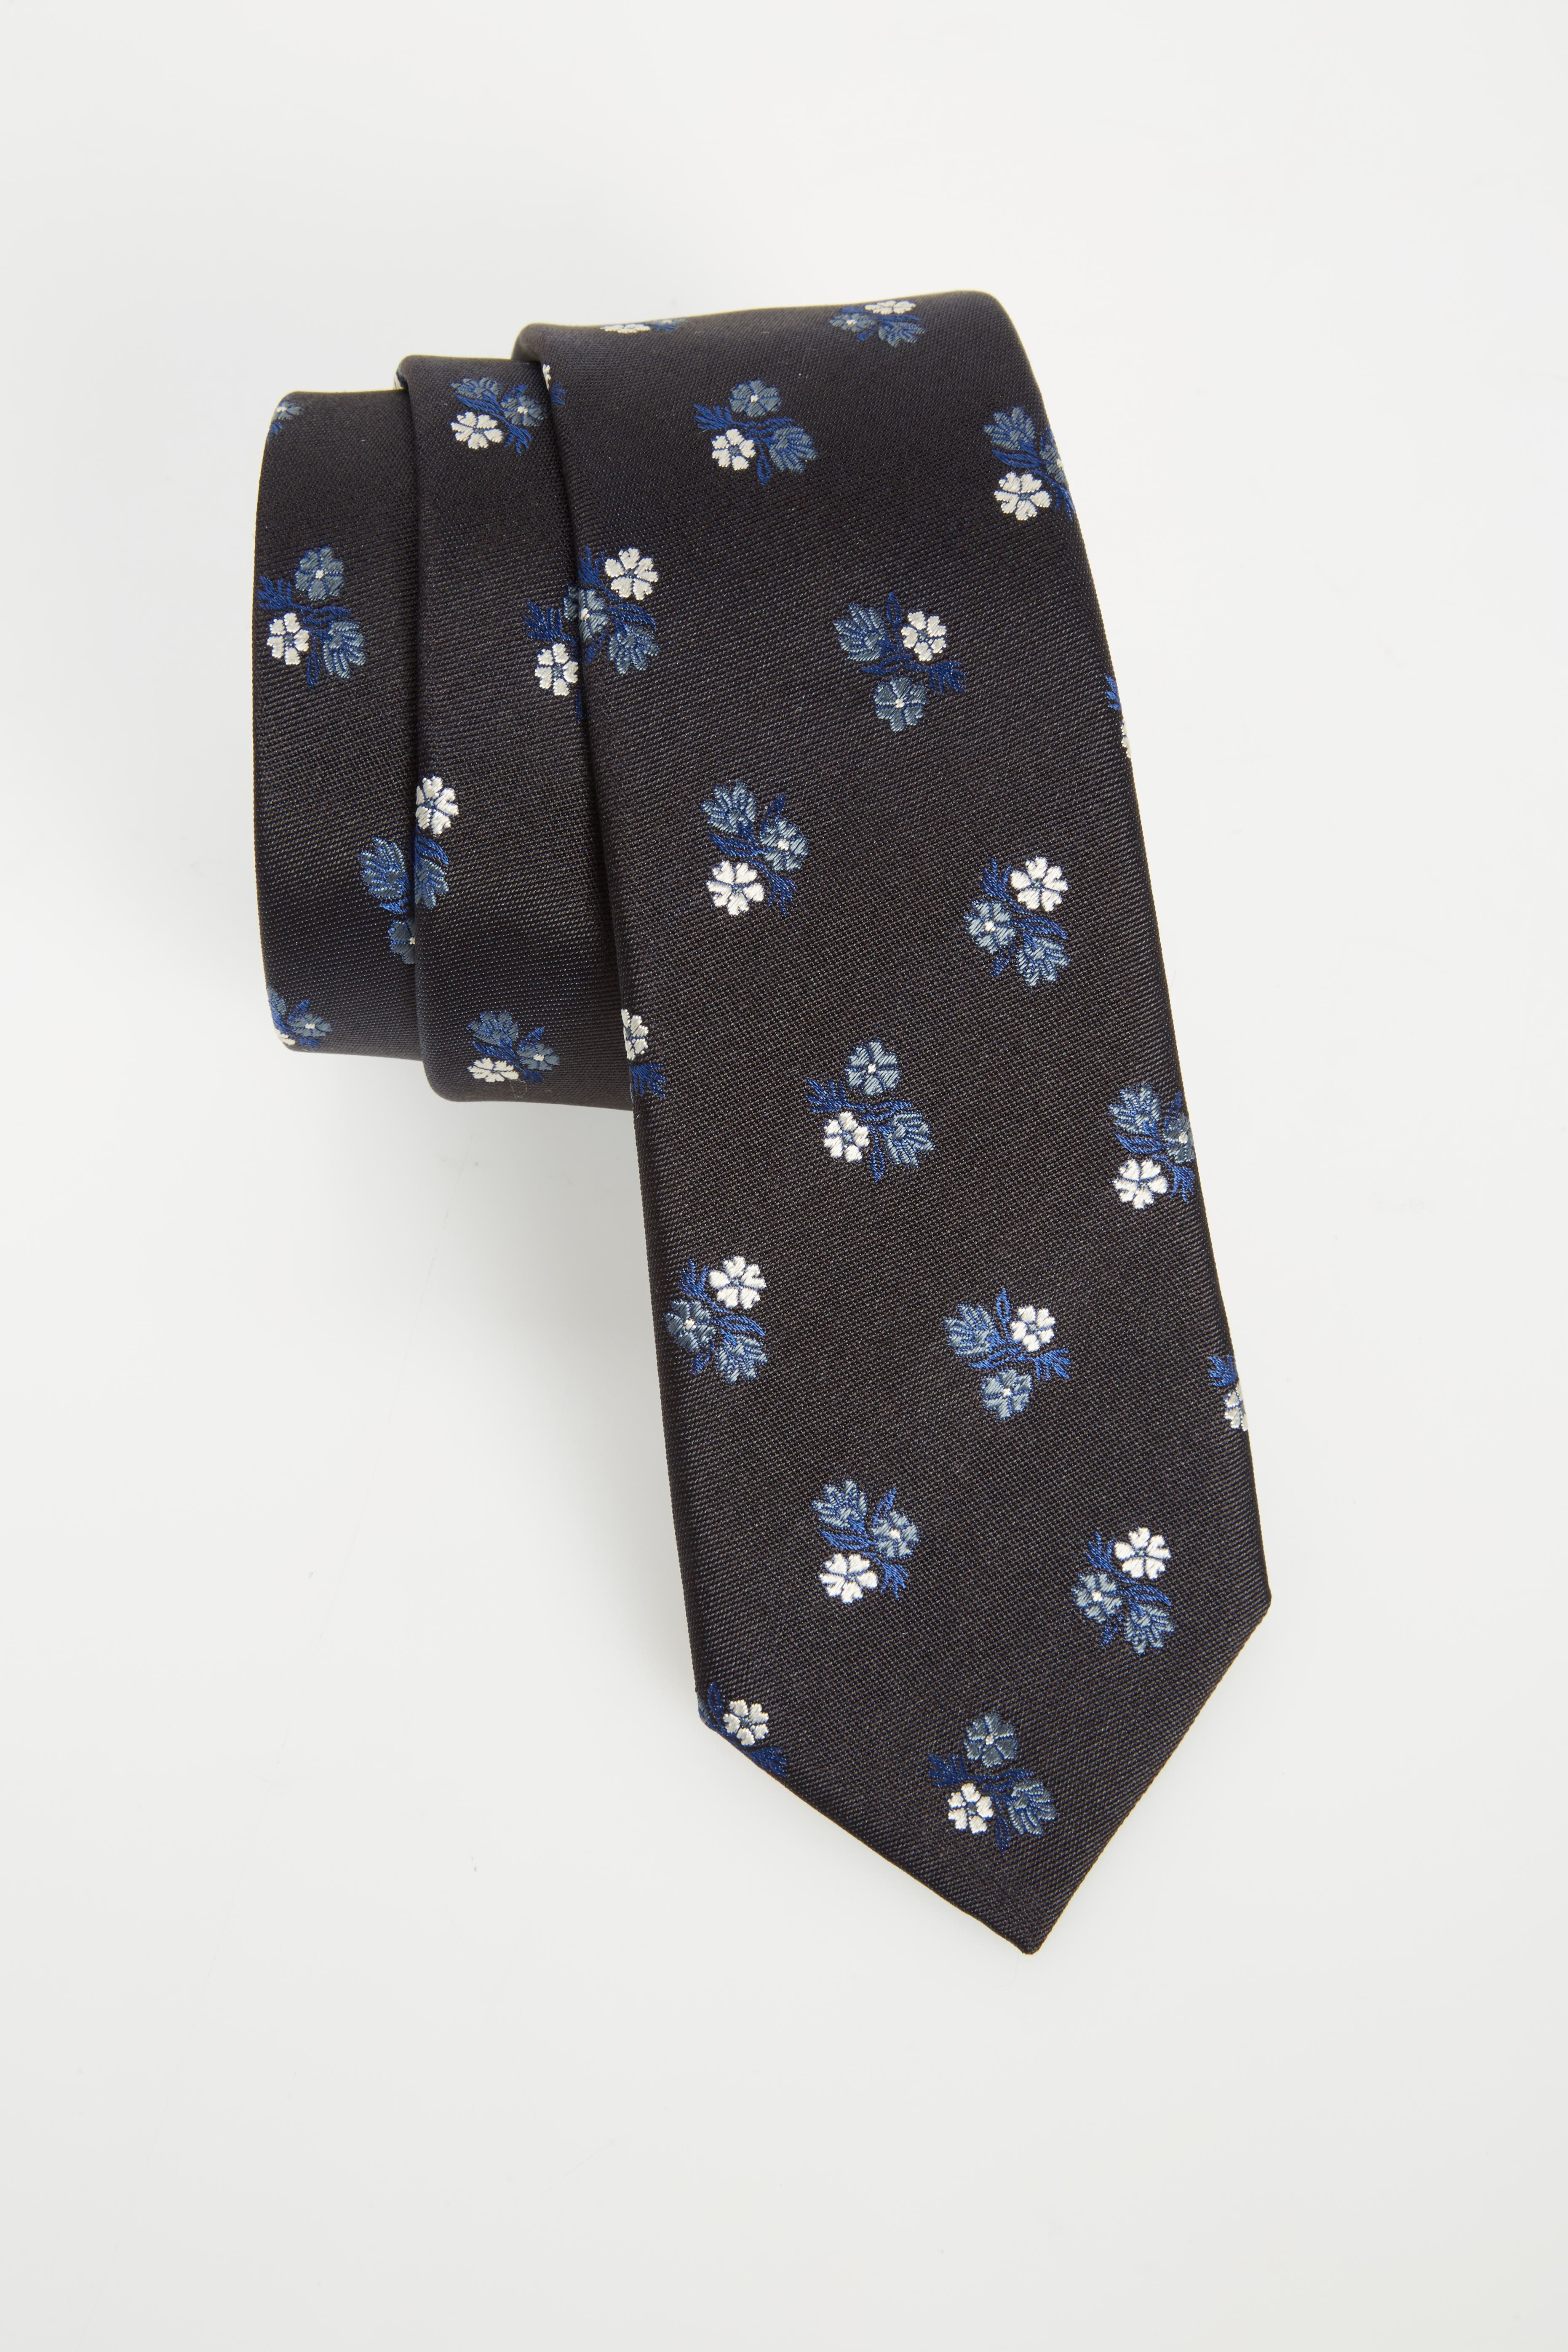 Paul Smith Floral Silk Skinny Tie